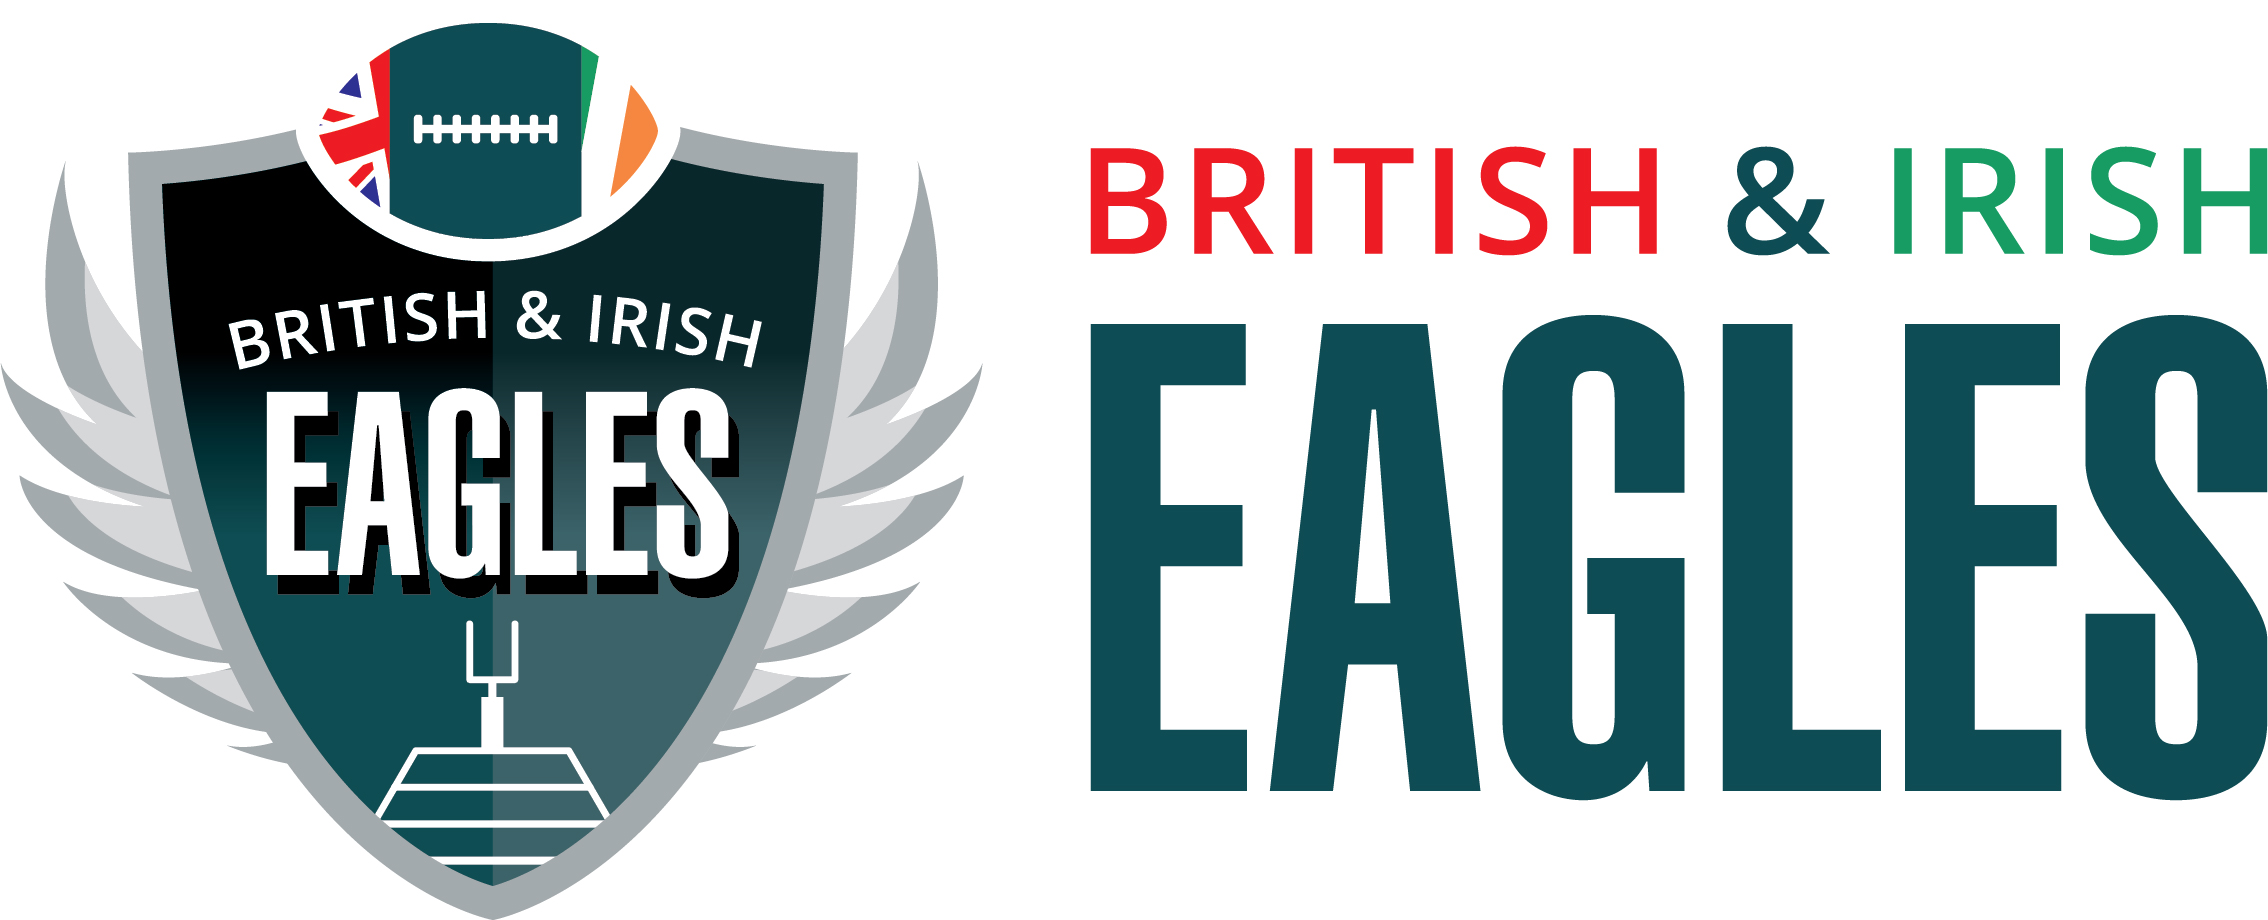 British & Irish Eagles